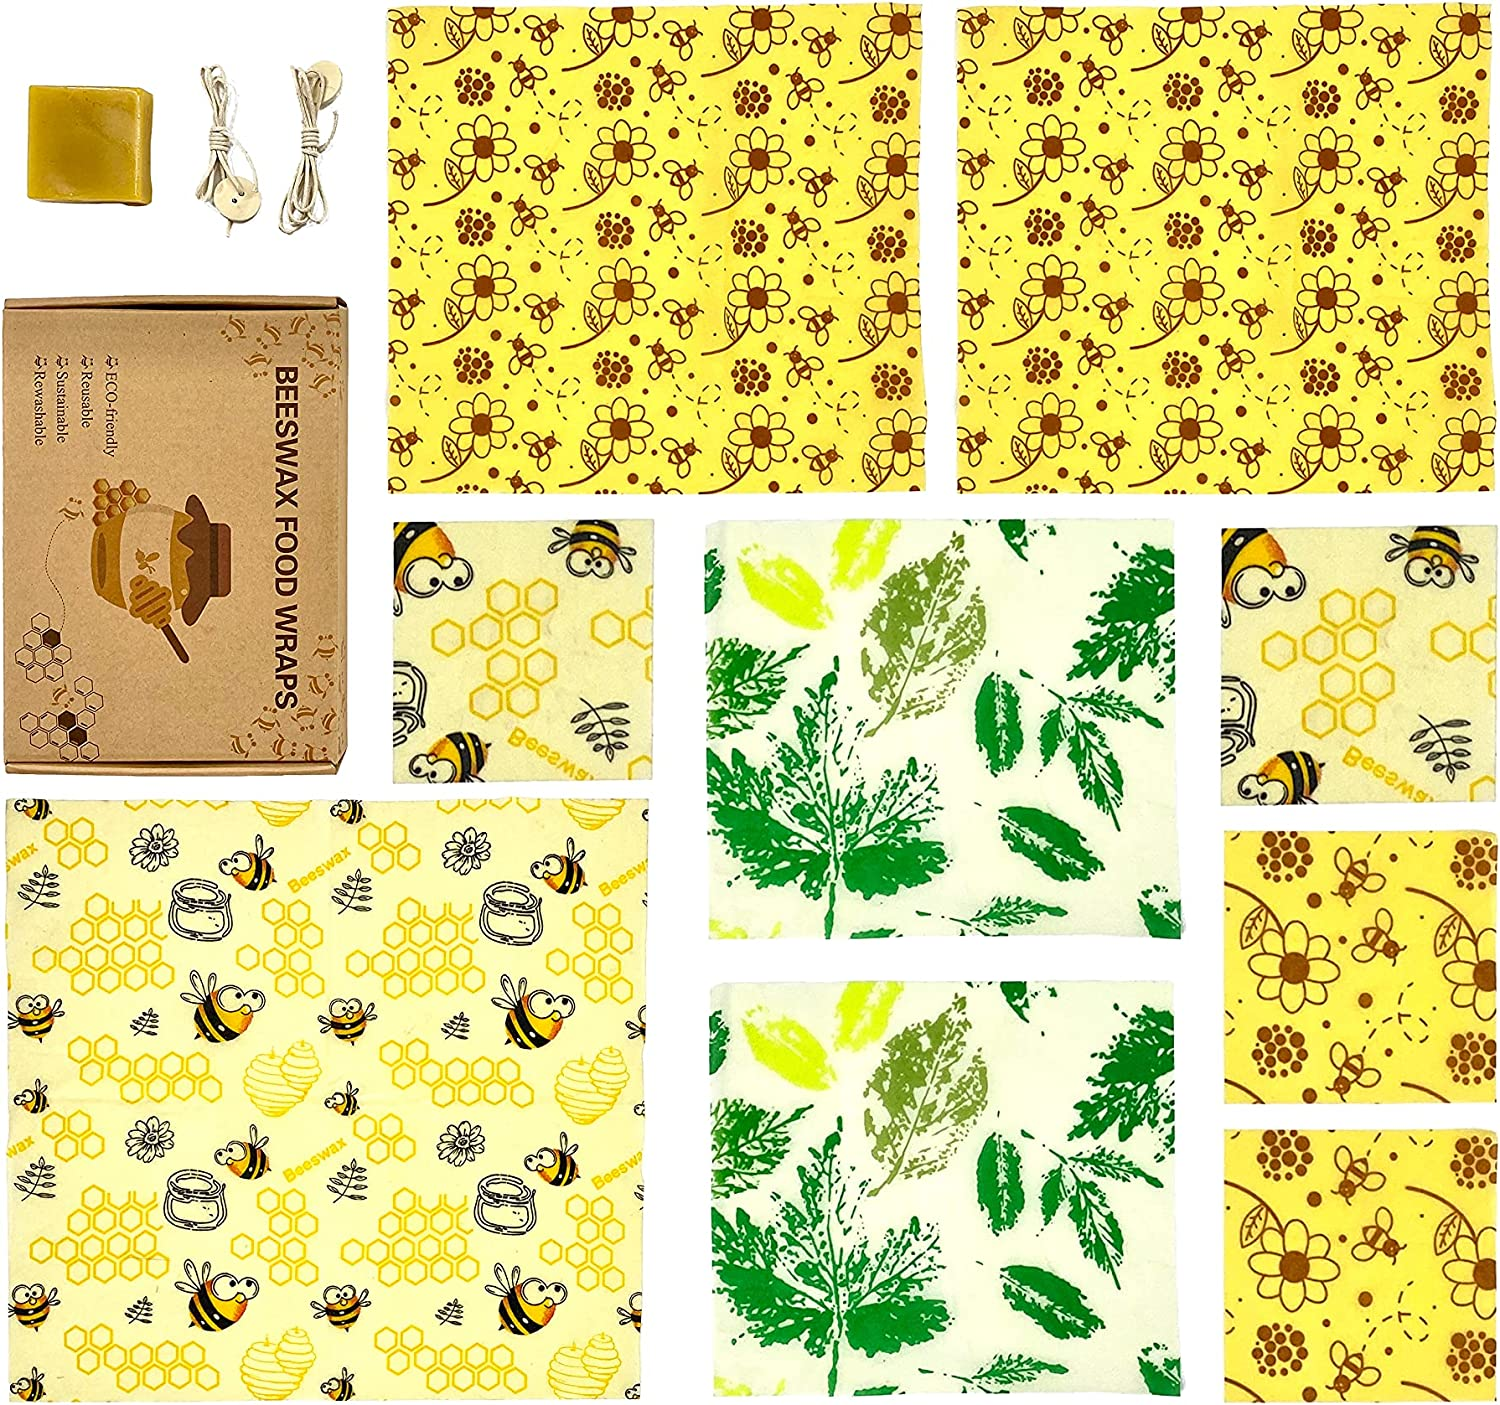 Beeswax Reusable Food Wraps,Beeswax Wrap set of 9,Zero waste,Eco Friendly Products,Sustainable Products,Reusable bags,Lock the Freshness of Food,Plastic Free for Food and Drink